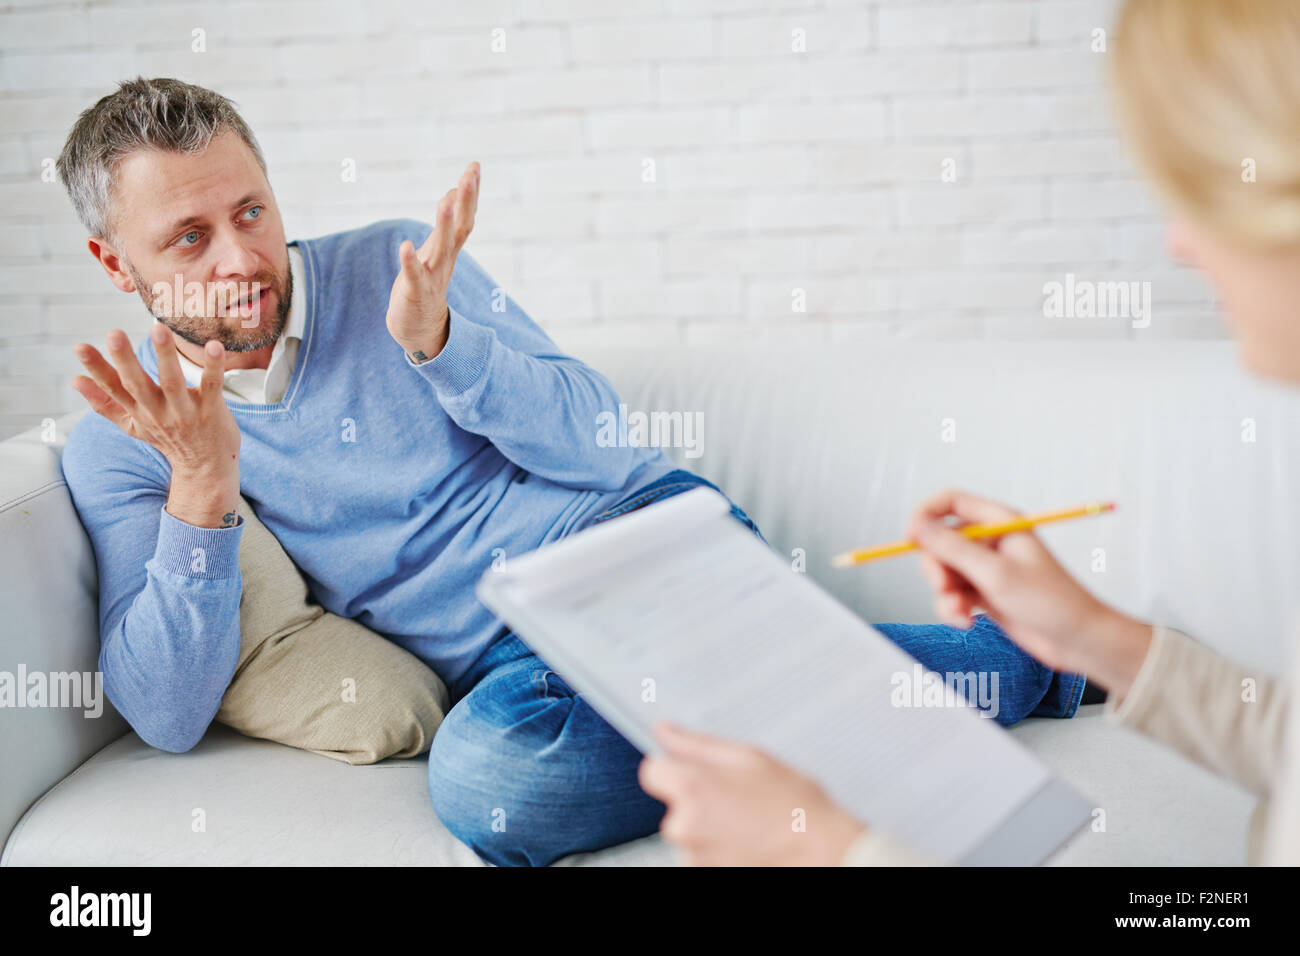 Confused man on sofa telling his psychologist what happened - Stock Image